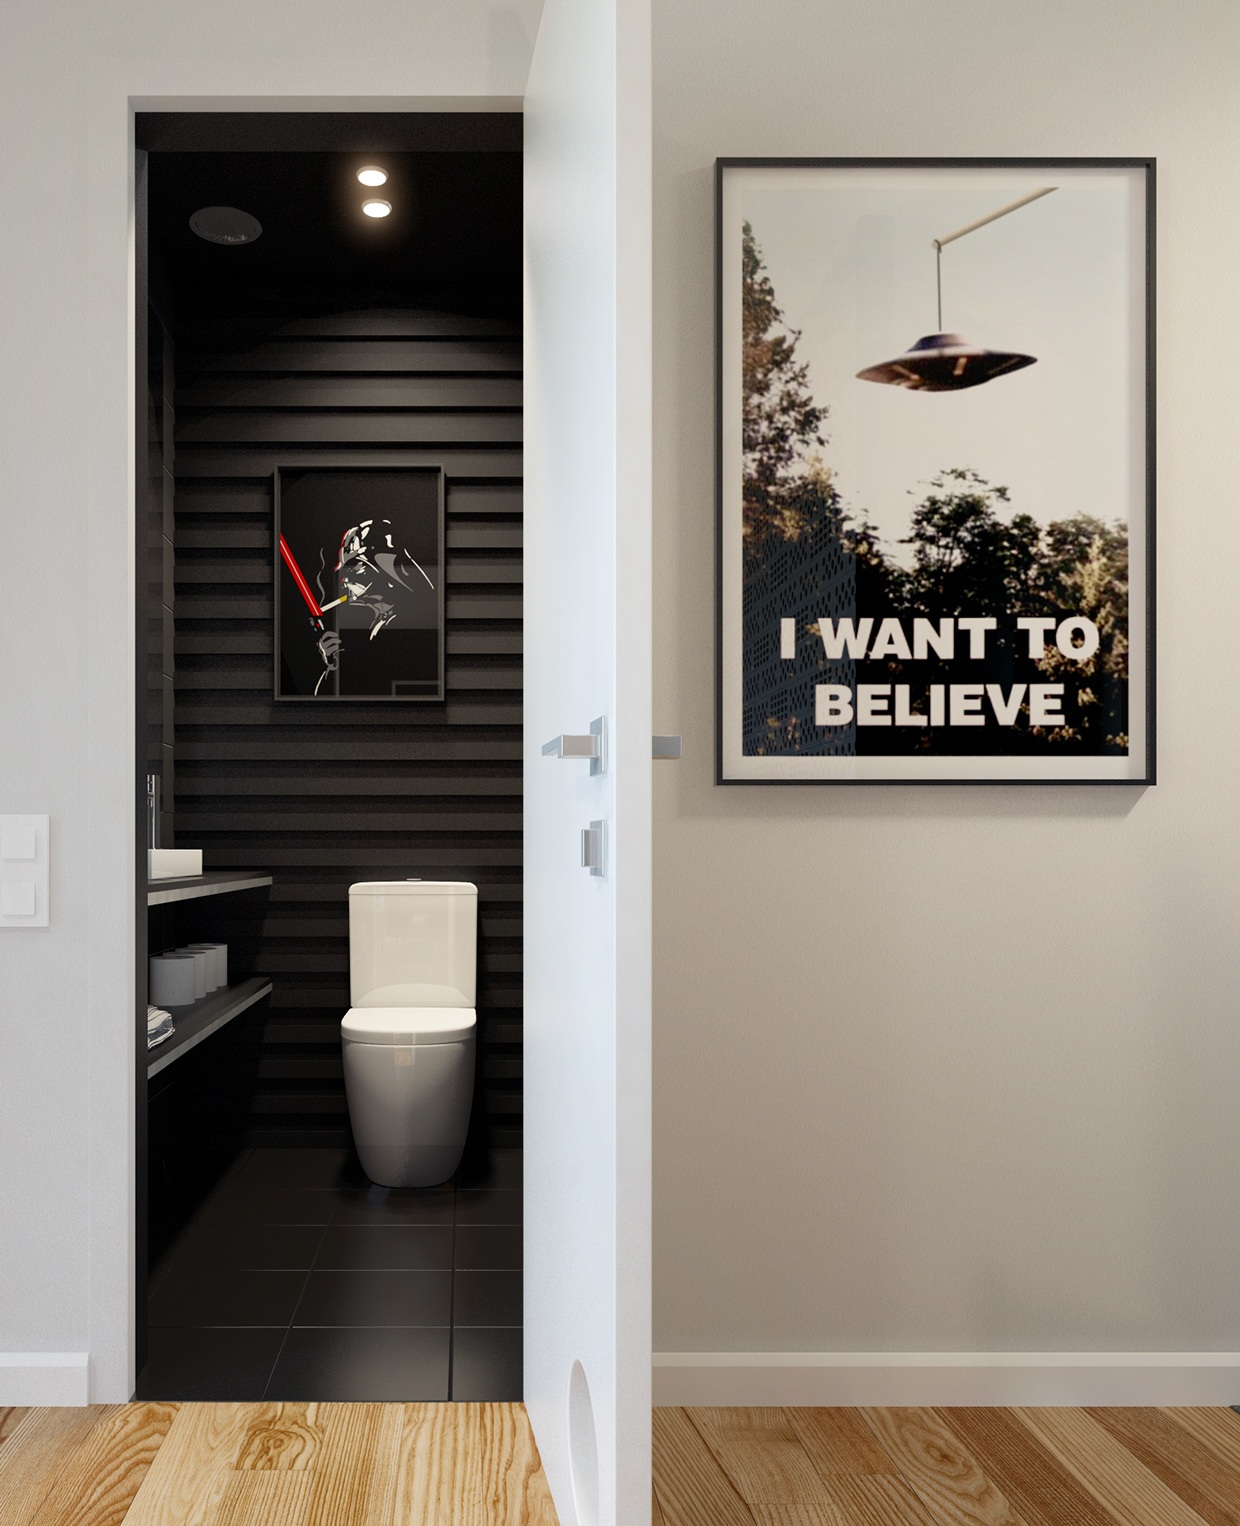 Clever star wars print interior design ideas - Decoration couloir gris et blanc ...